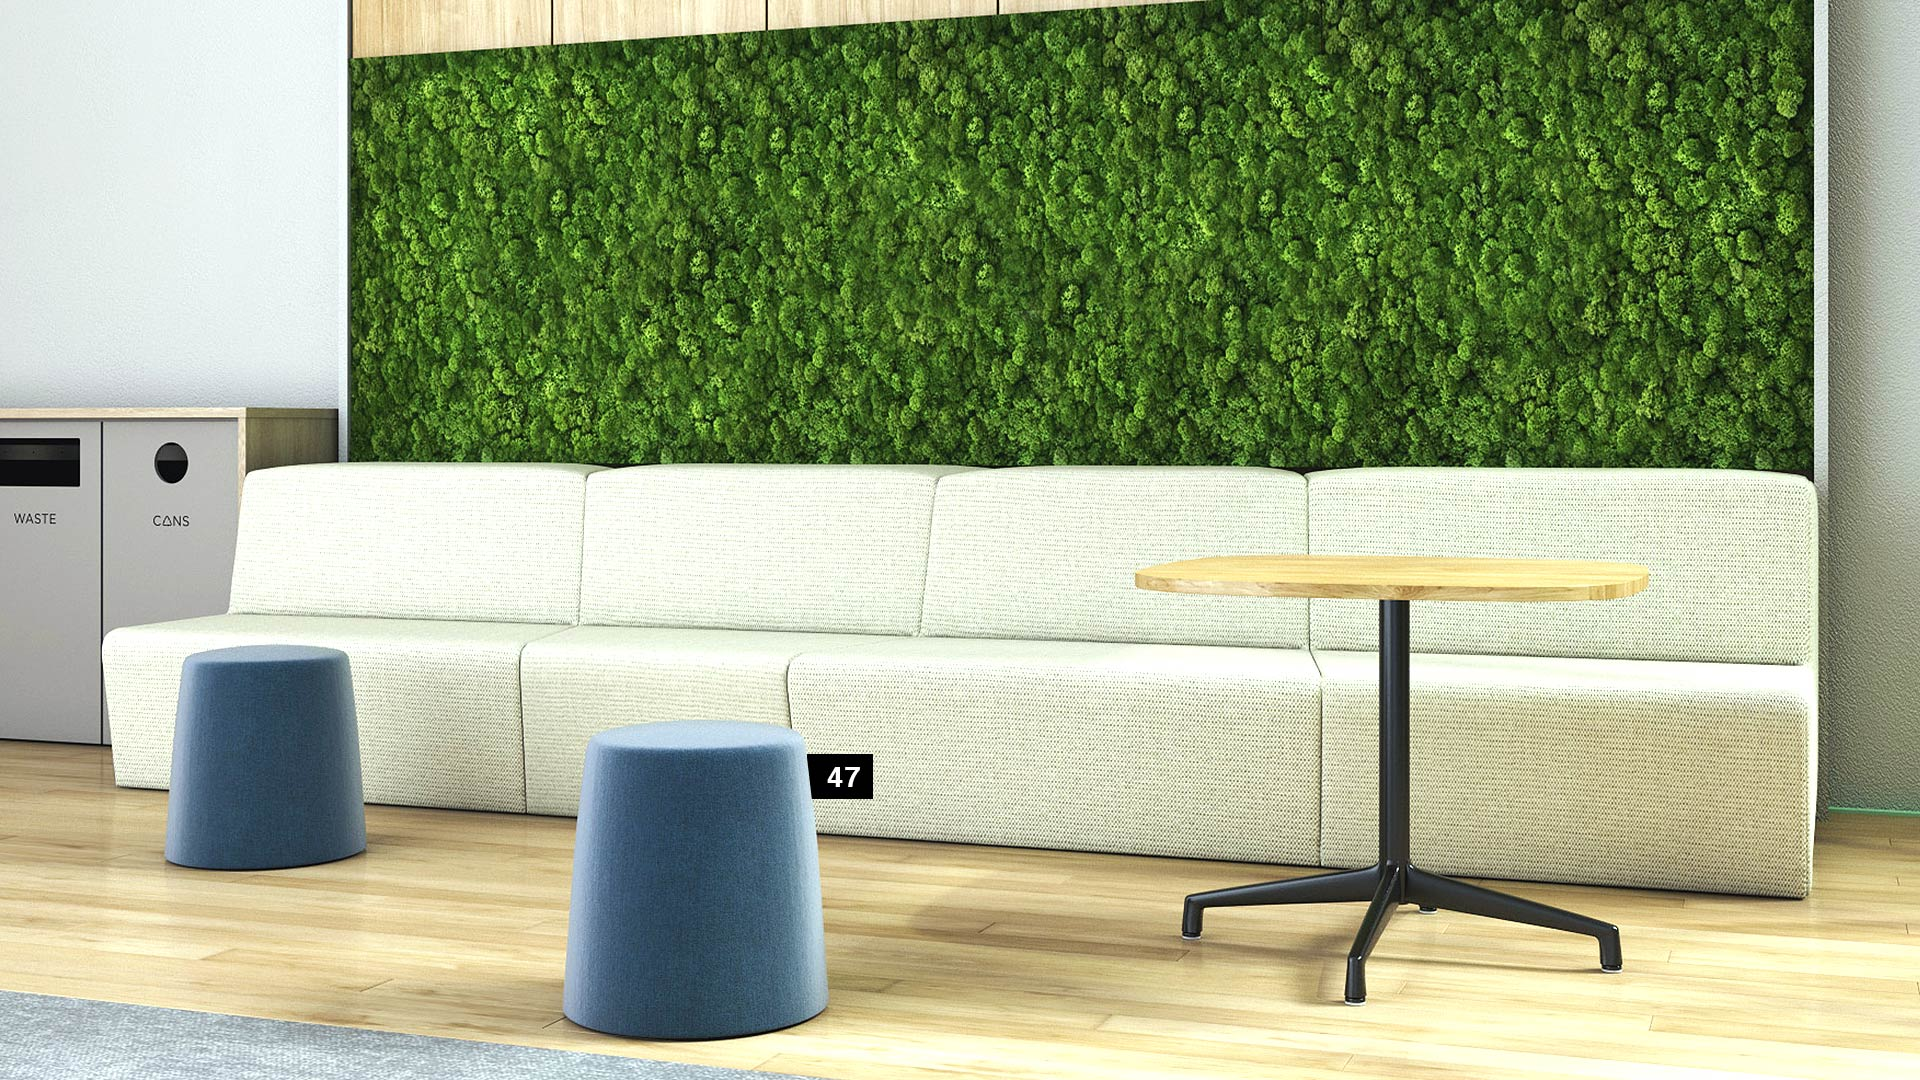 green-office-nevins-free-standing-recycling-green-wall